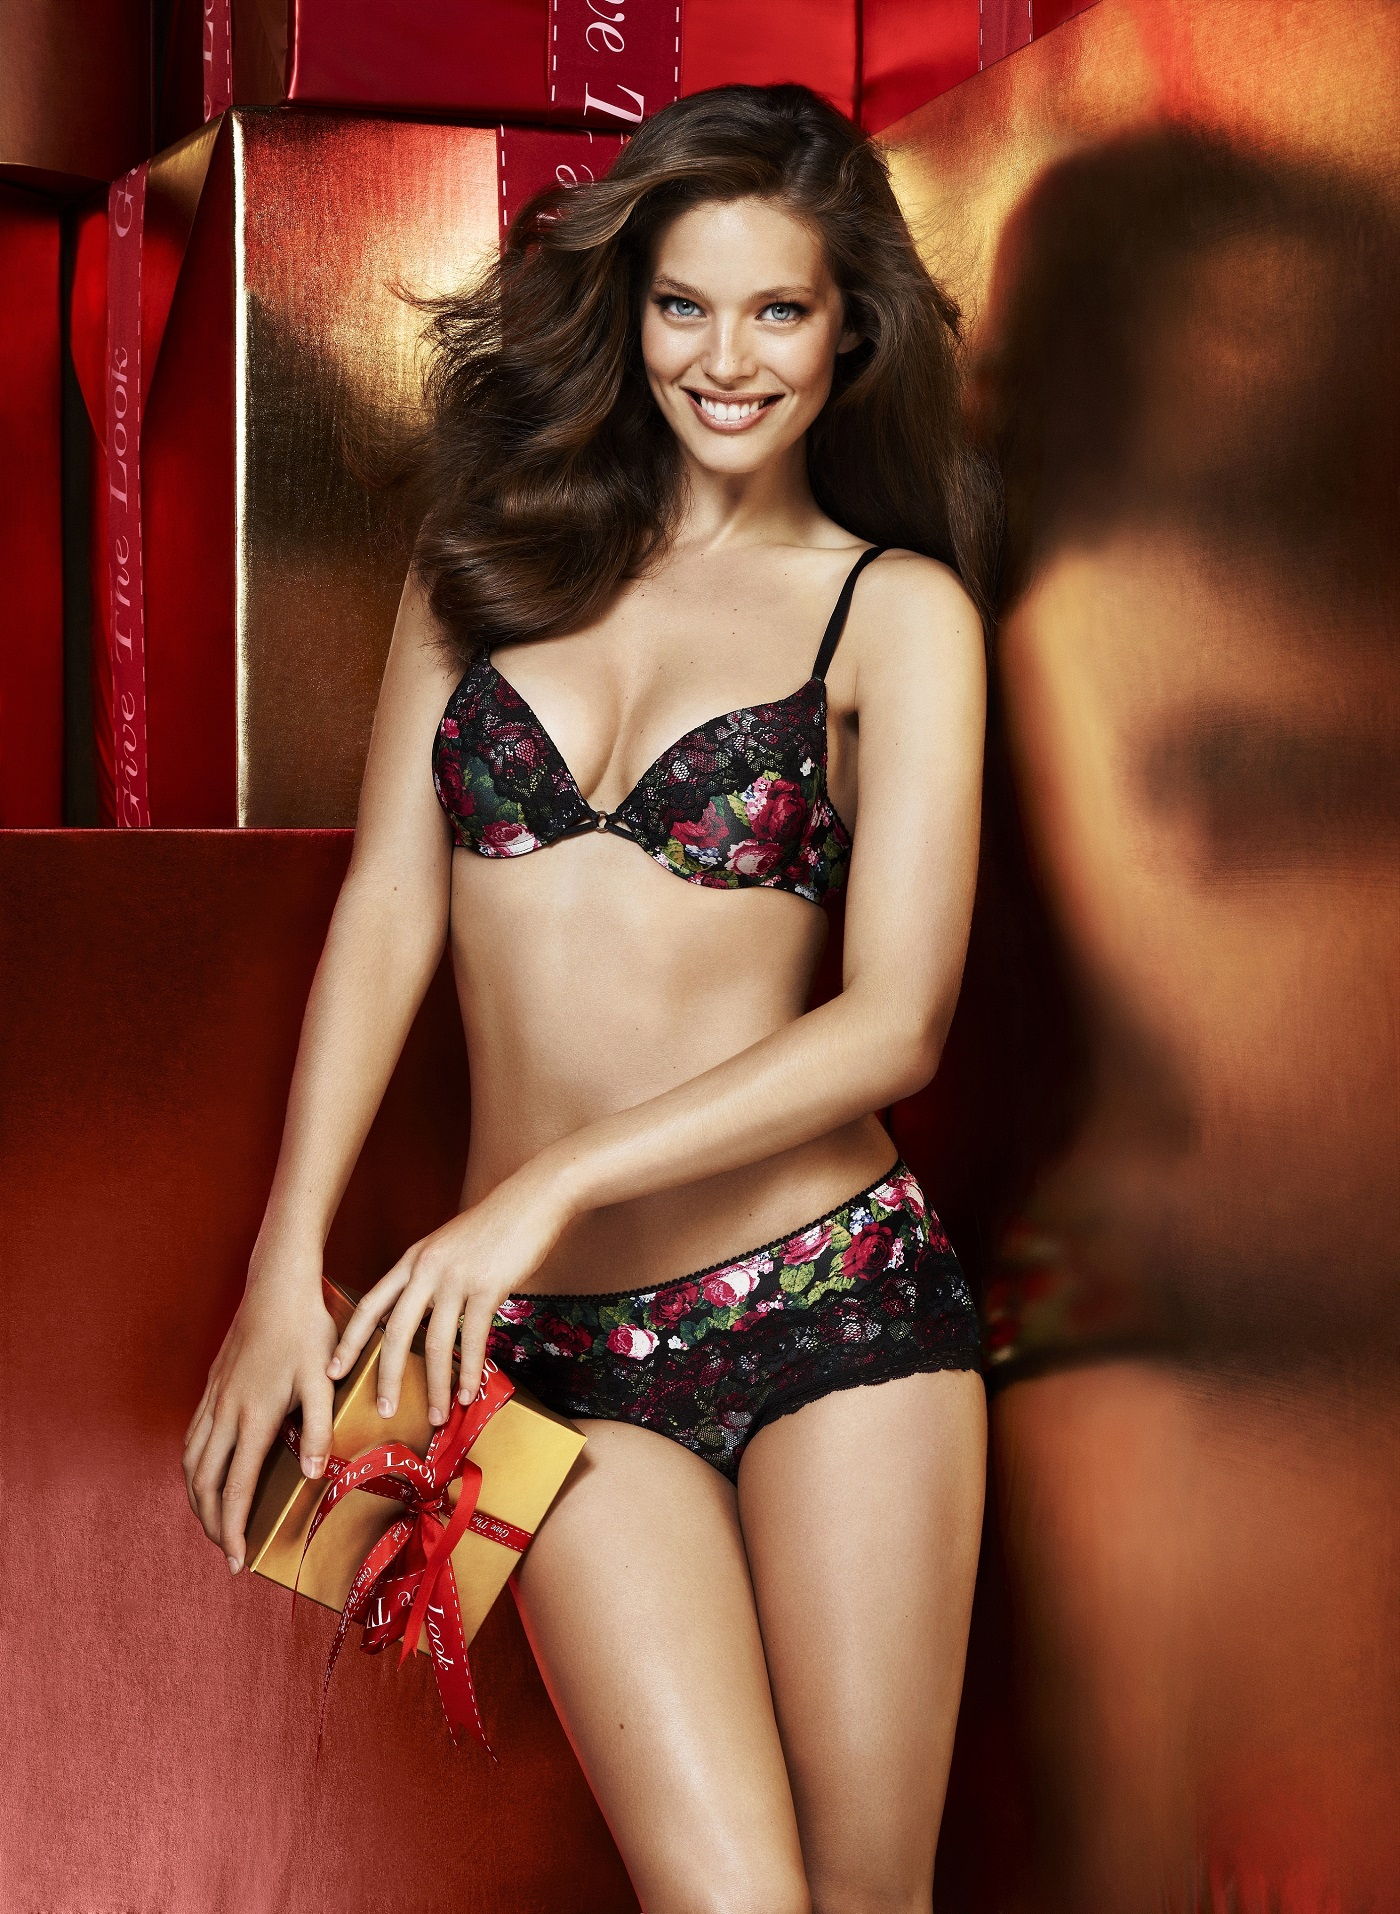 Live Girl Wallpaper Iphone Emily Didonato Very Sexy For Lindex Intimates Lingerie